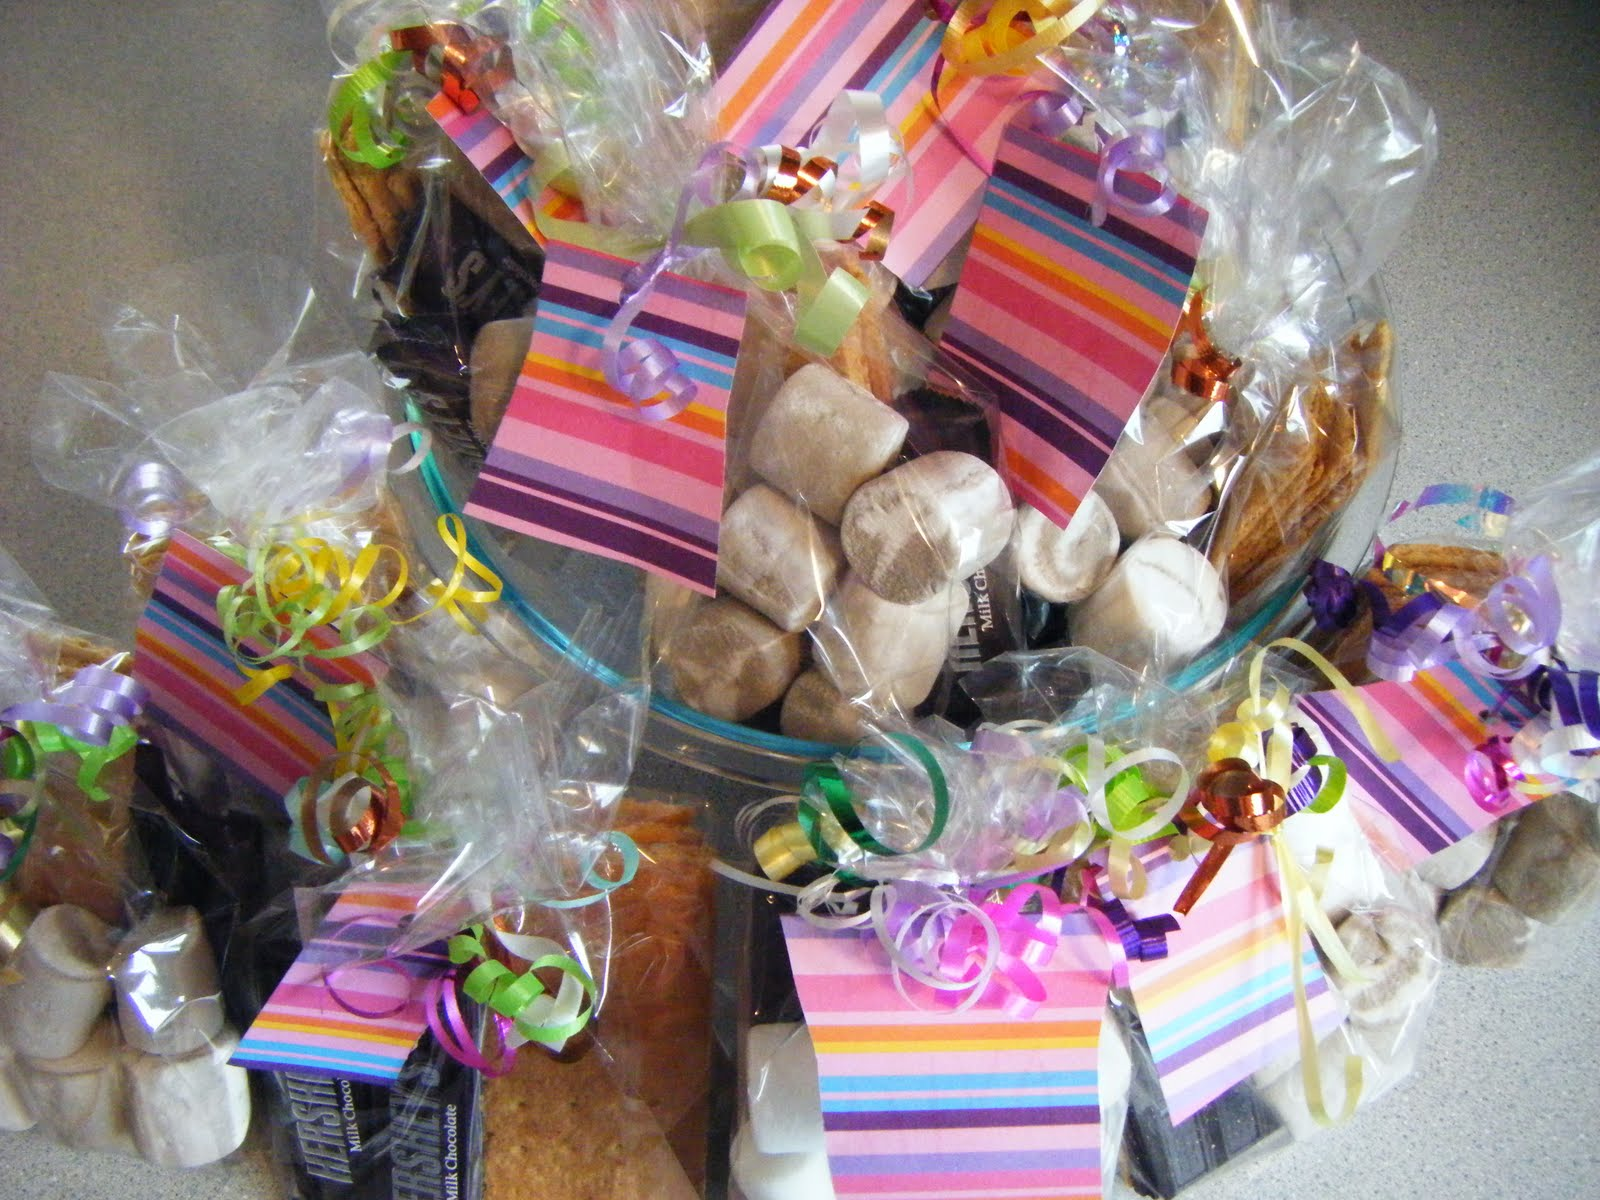 Gift Baskets For Office Staff: Best images about gift ideas for ...